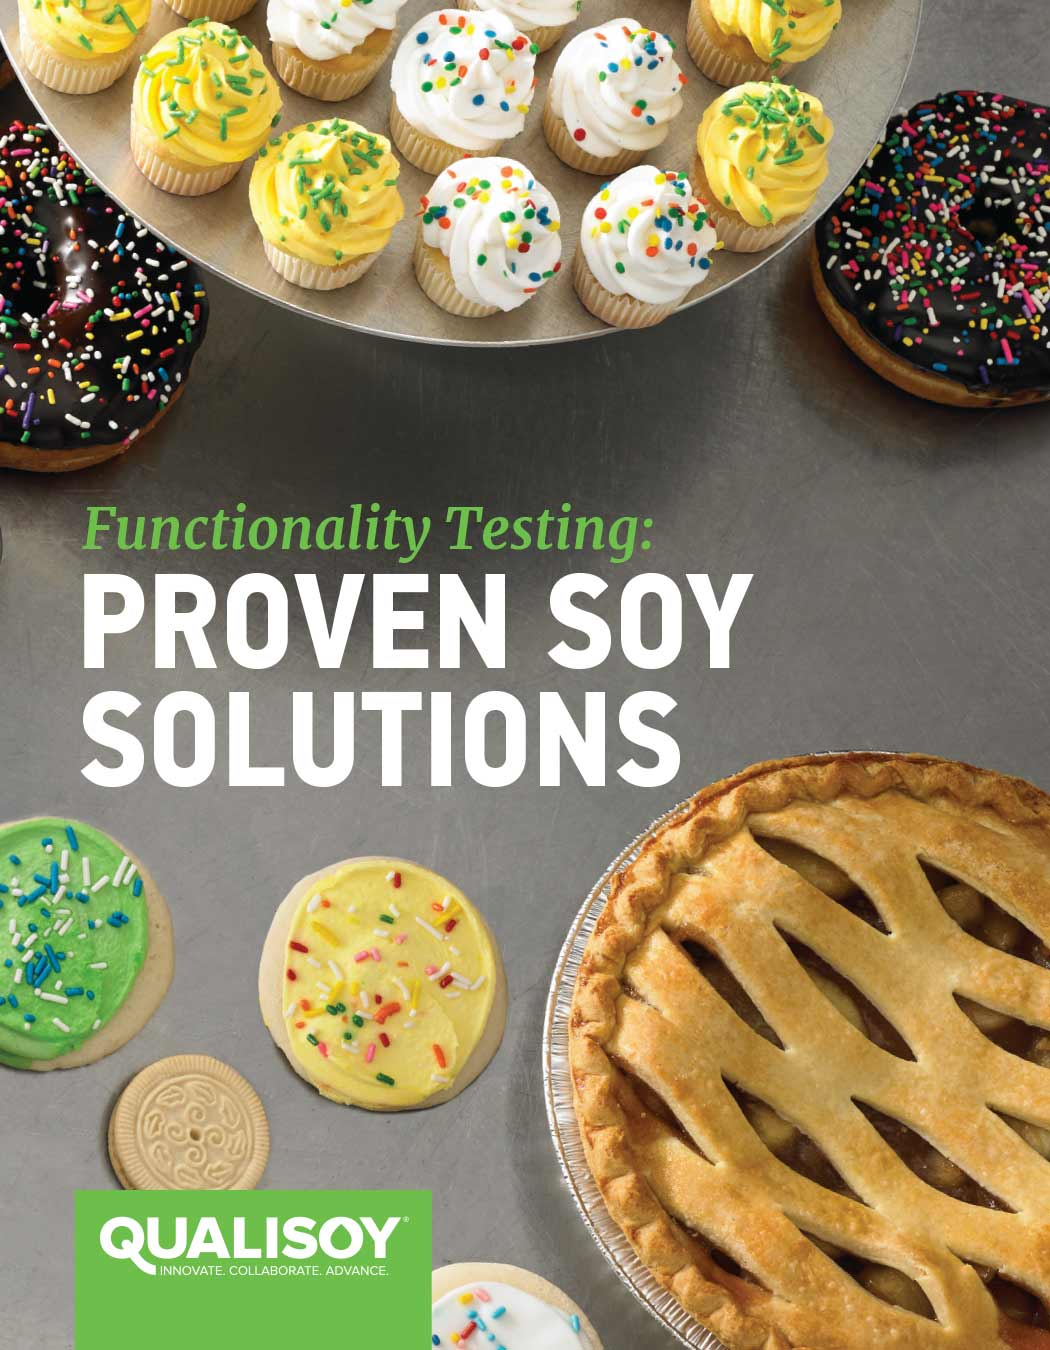 Functionality Testing: Proven Soy Solutions